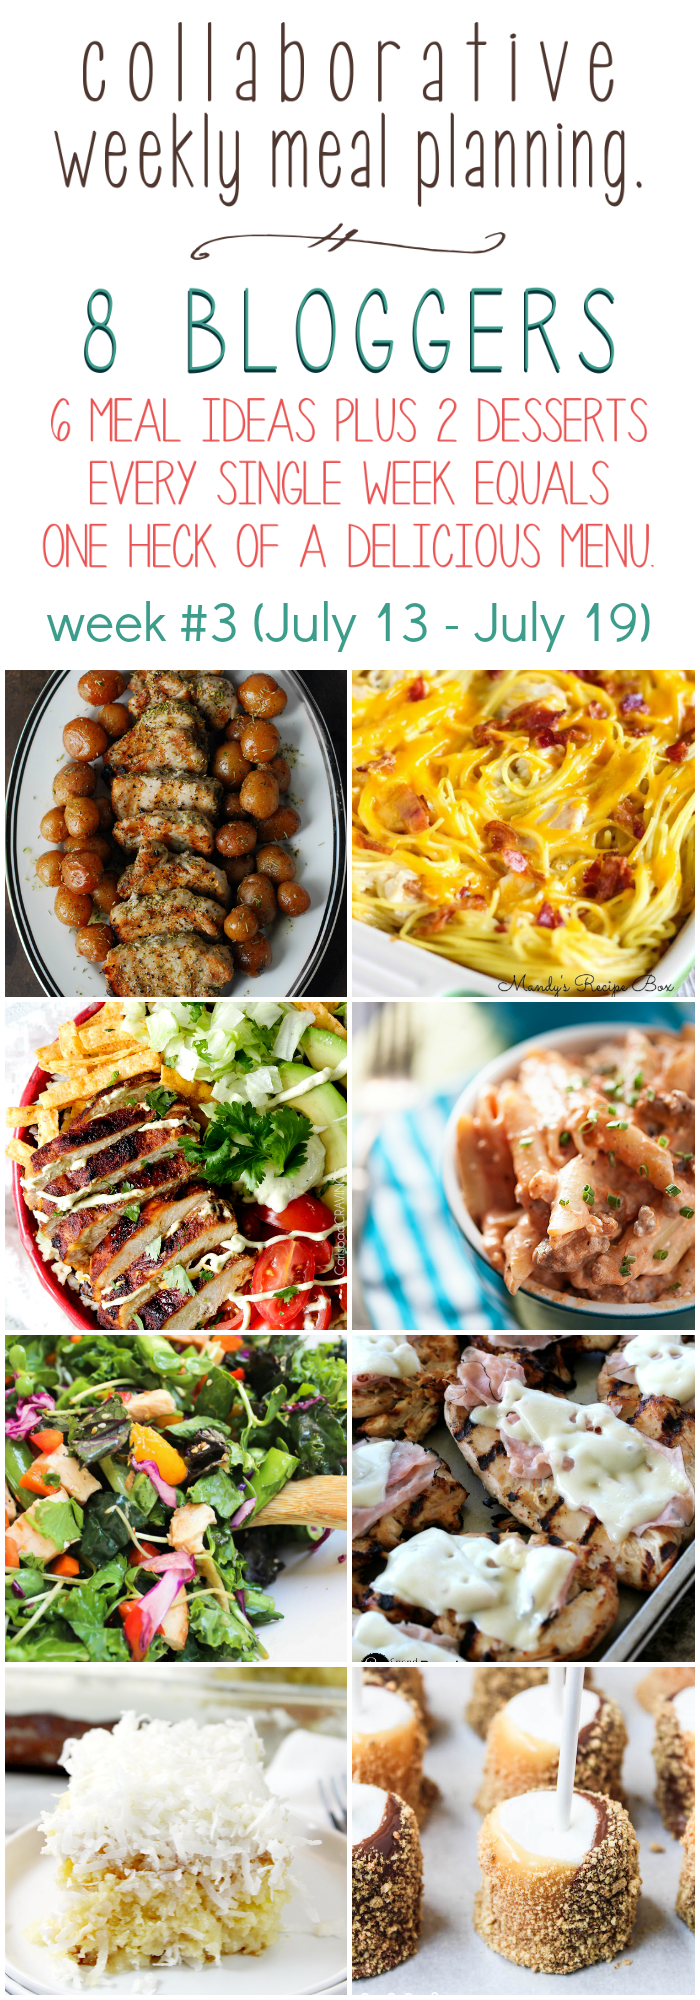 Collaborative weekly meal planning. 8 bloggers. 6 meal ideas plus 2 desserts every single week equals one heck of a delicious menu! Week 3